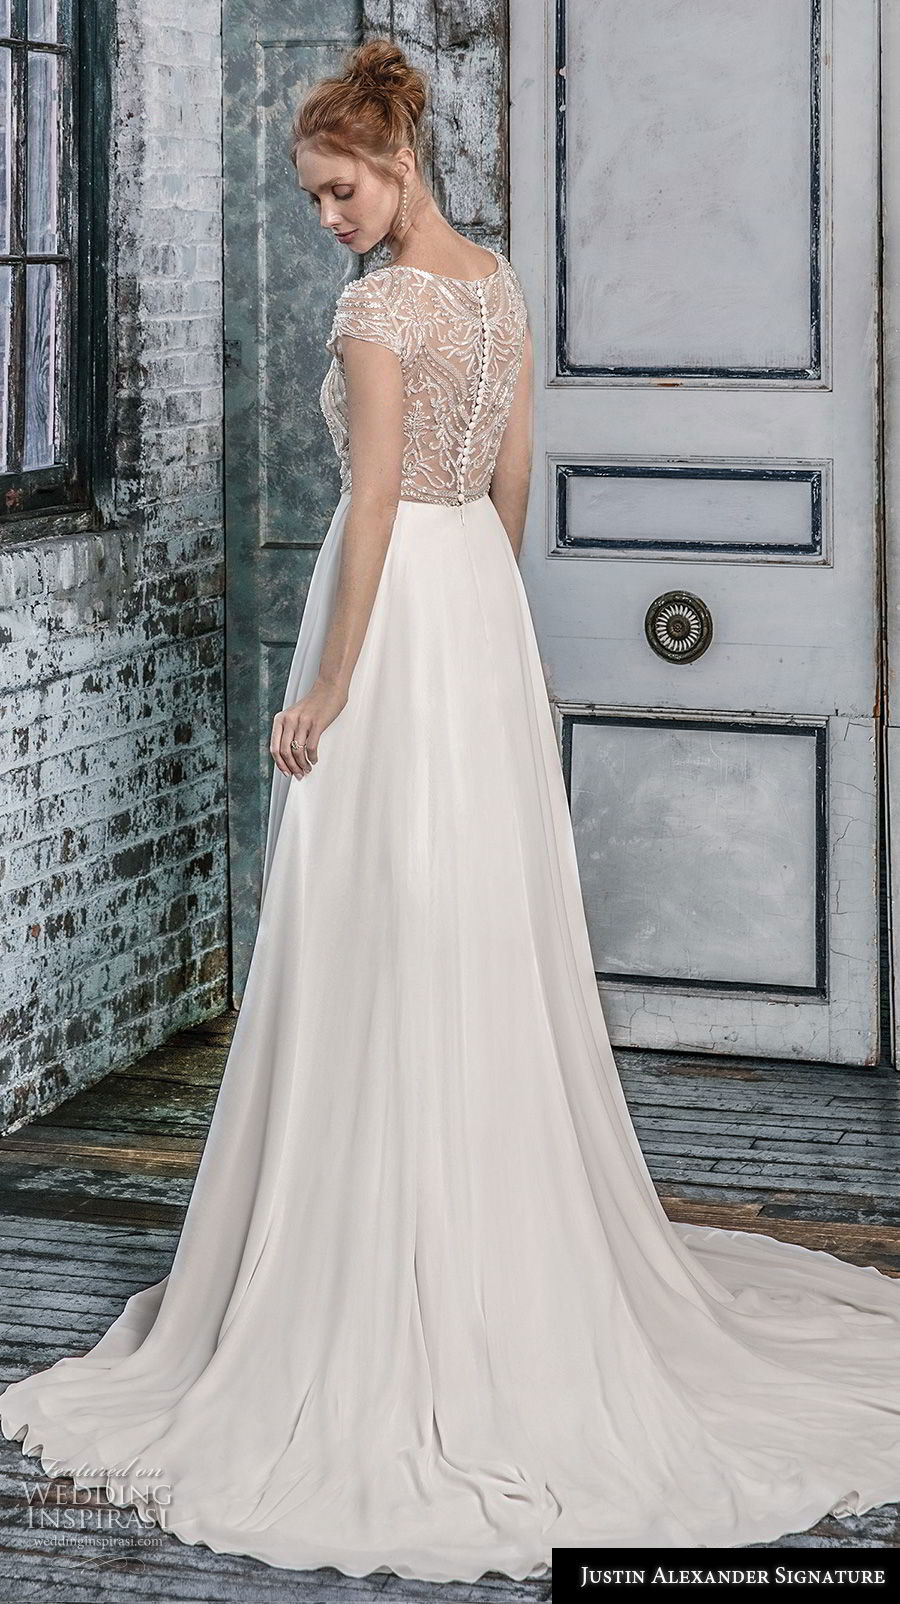 justin alexander fall 2018 signature cap sleeves illusion jewel sweetheart neckline heavily embellished bodice glizty romantic soft a  line wedding dress lace button back short train (14) bv